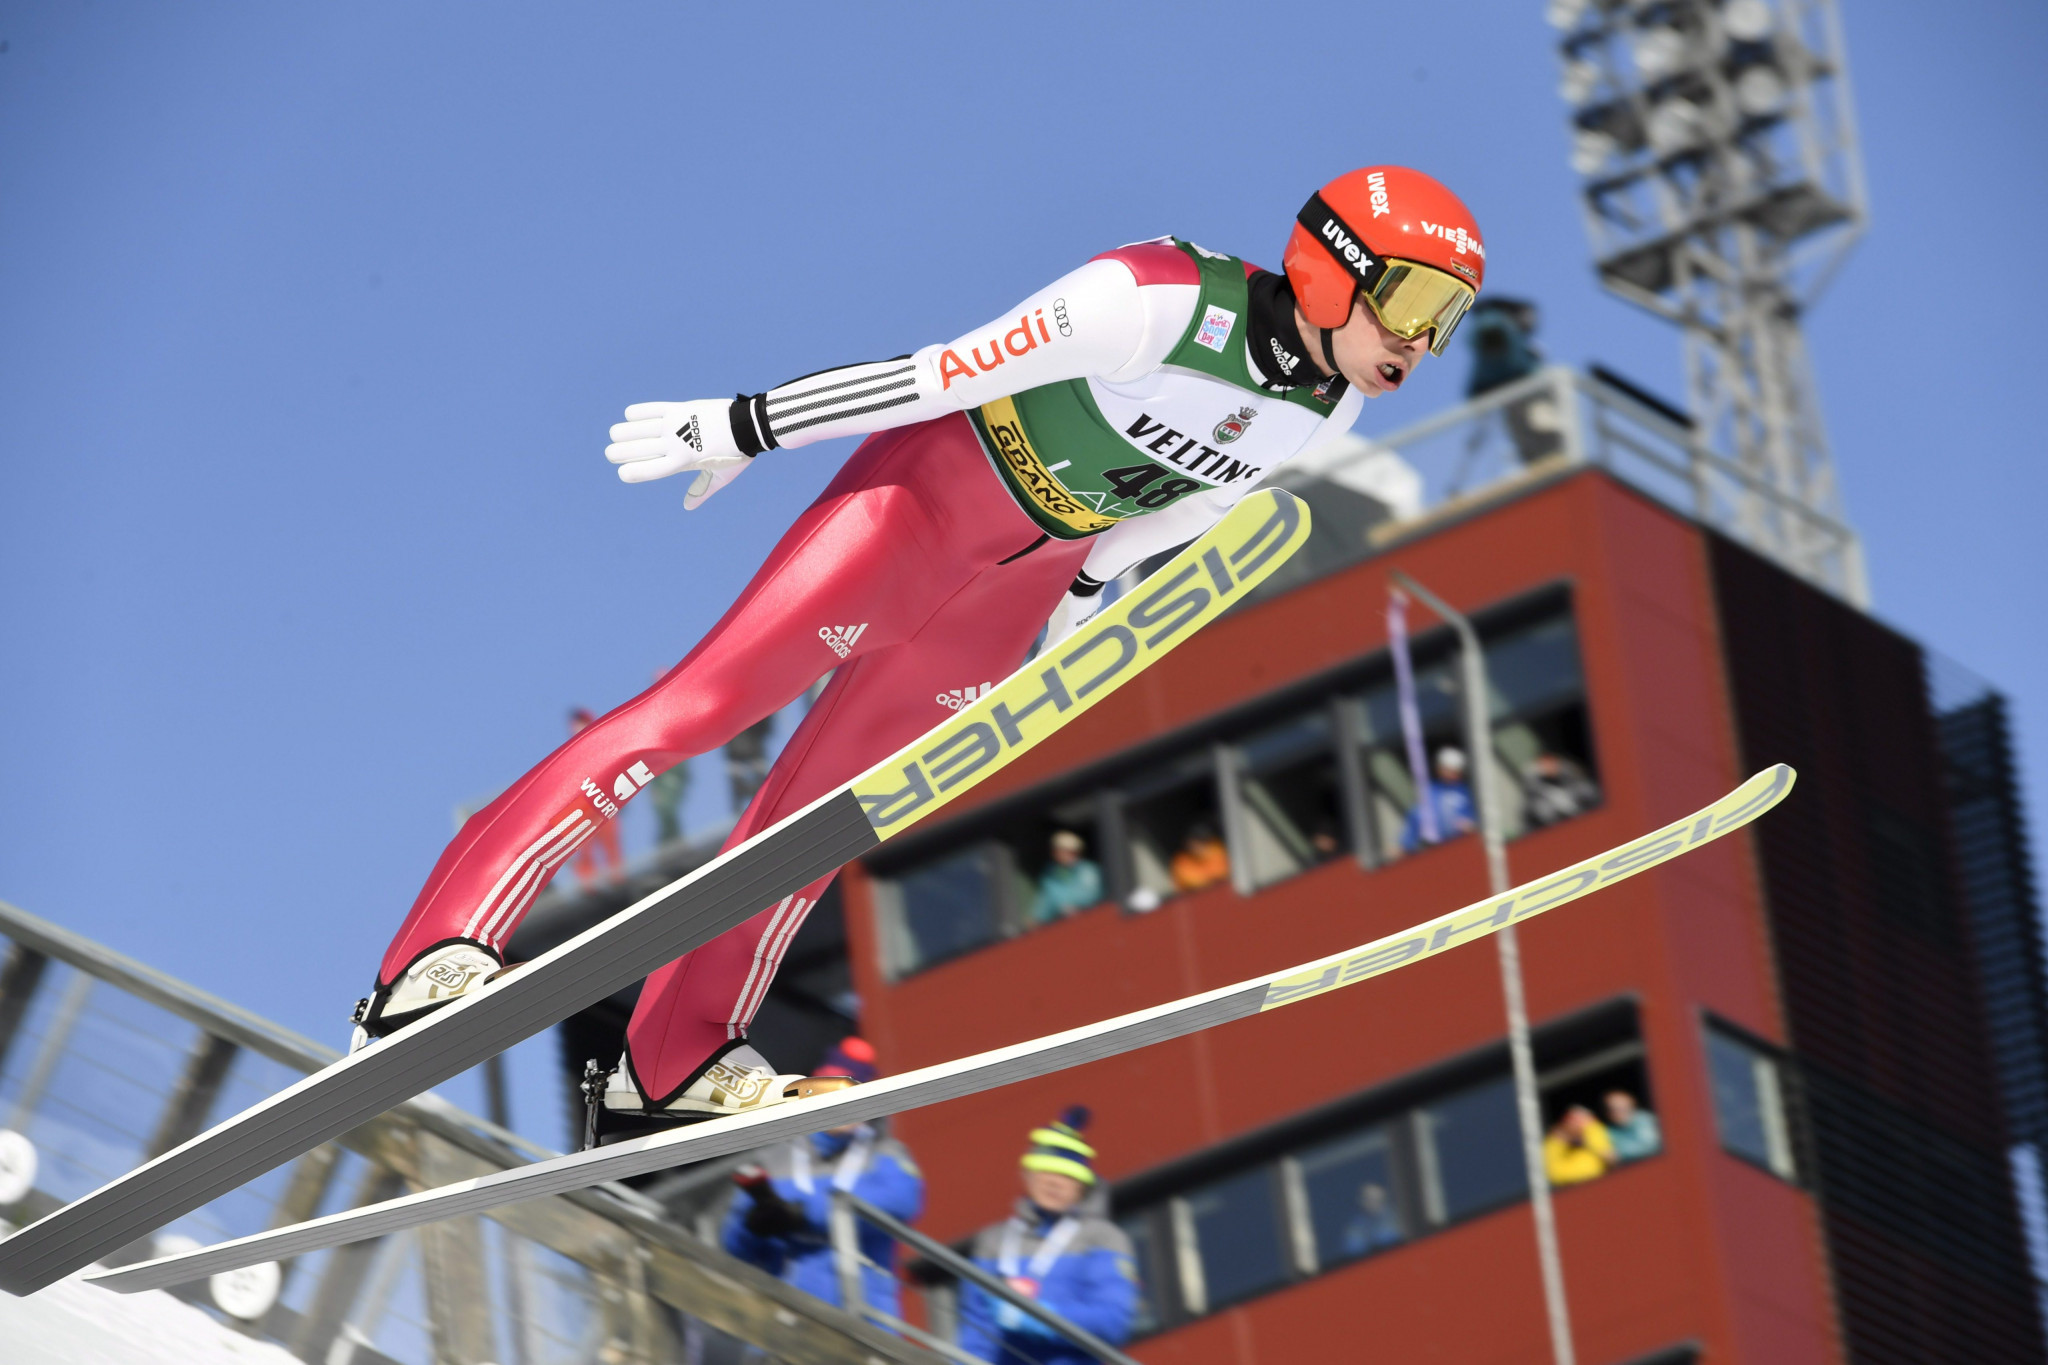 Frenzel targeting a big chunk of silverware at FIS Nordic Combined World Cup Final on home snow